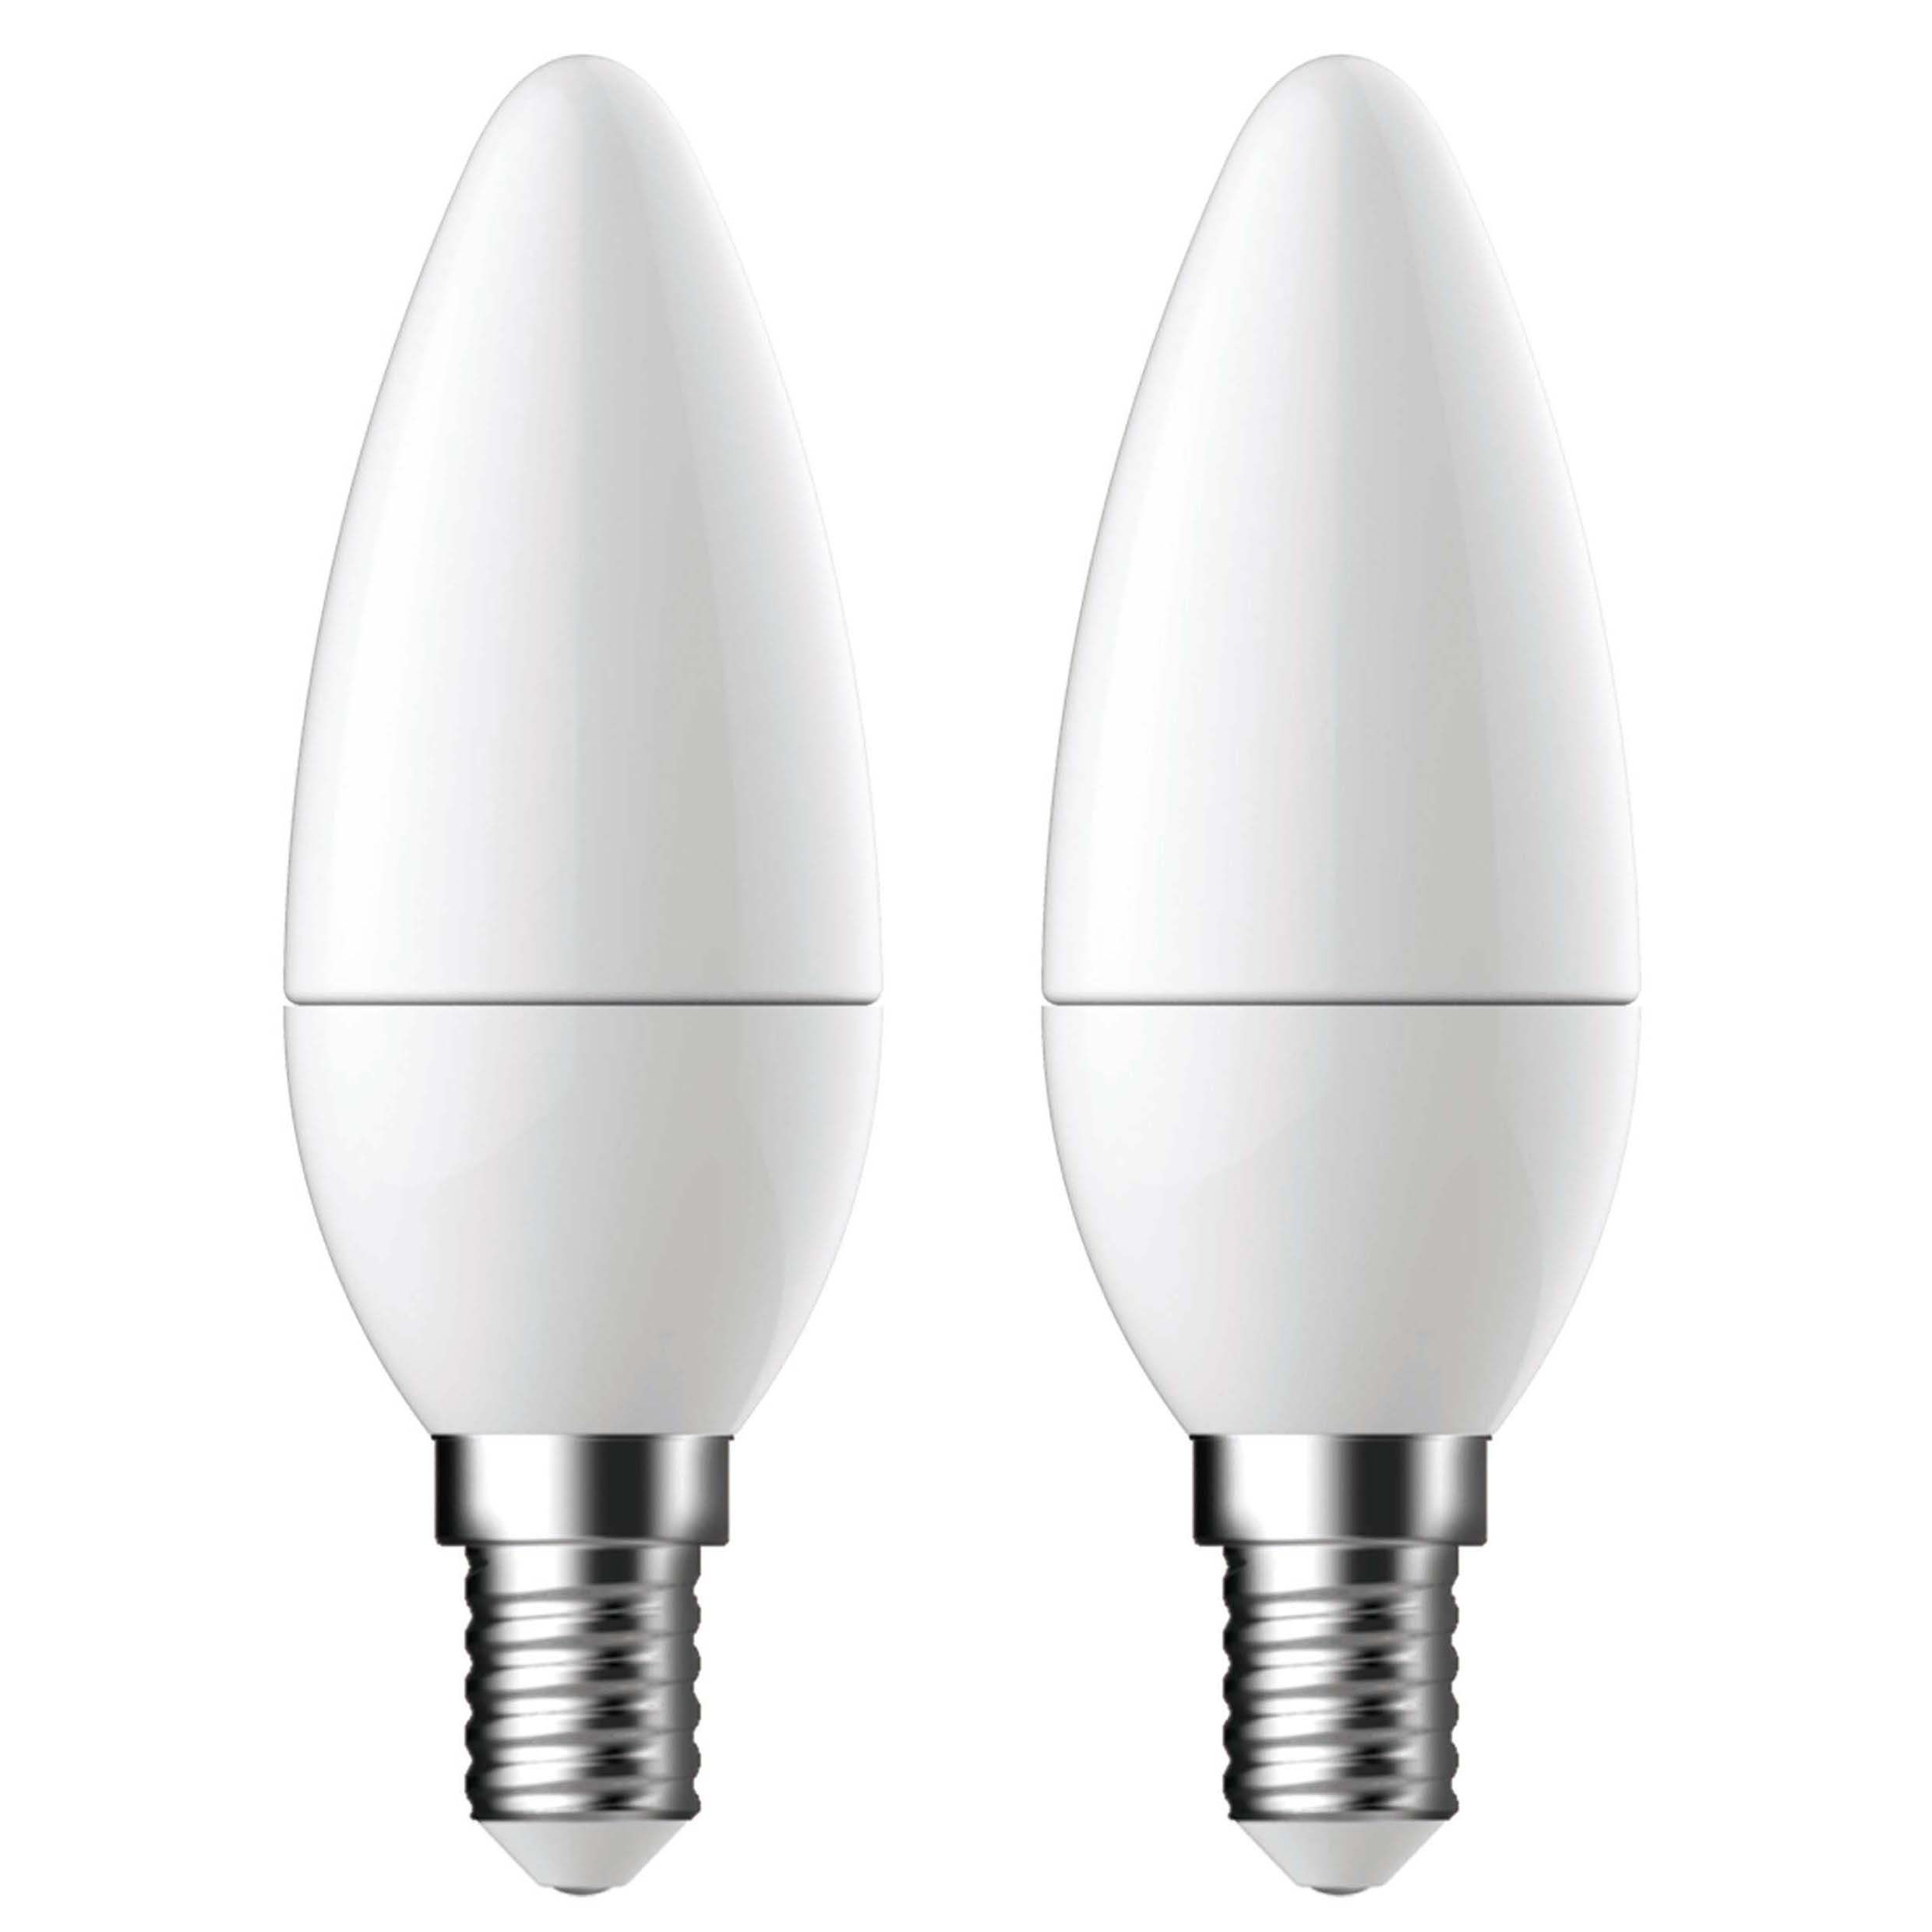 Light Bulbs >> Diall E14 470lm LED Candle Light Bulb, Pack of 2 | Departments | DIY at B&Q